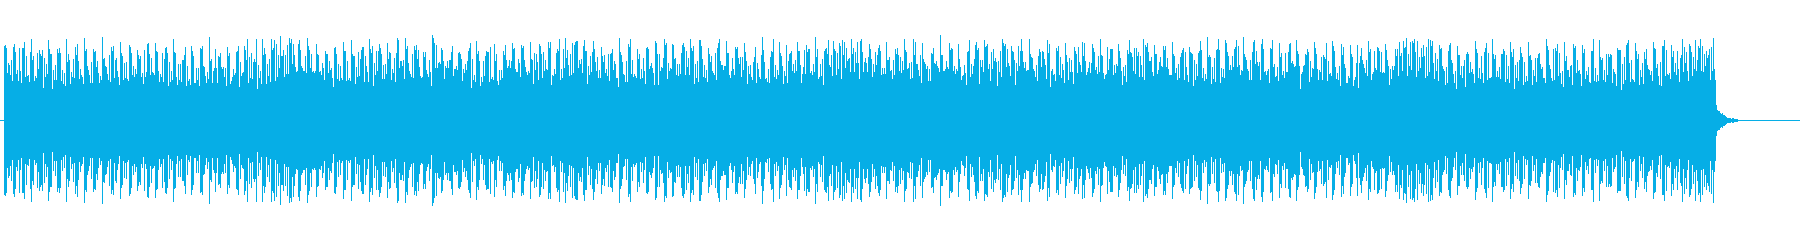 Mechanical techno BGM's reproduced waveform